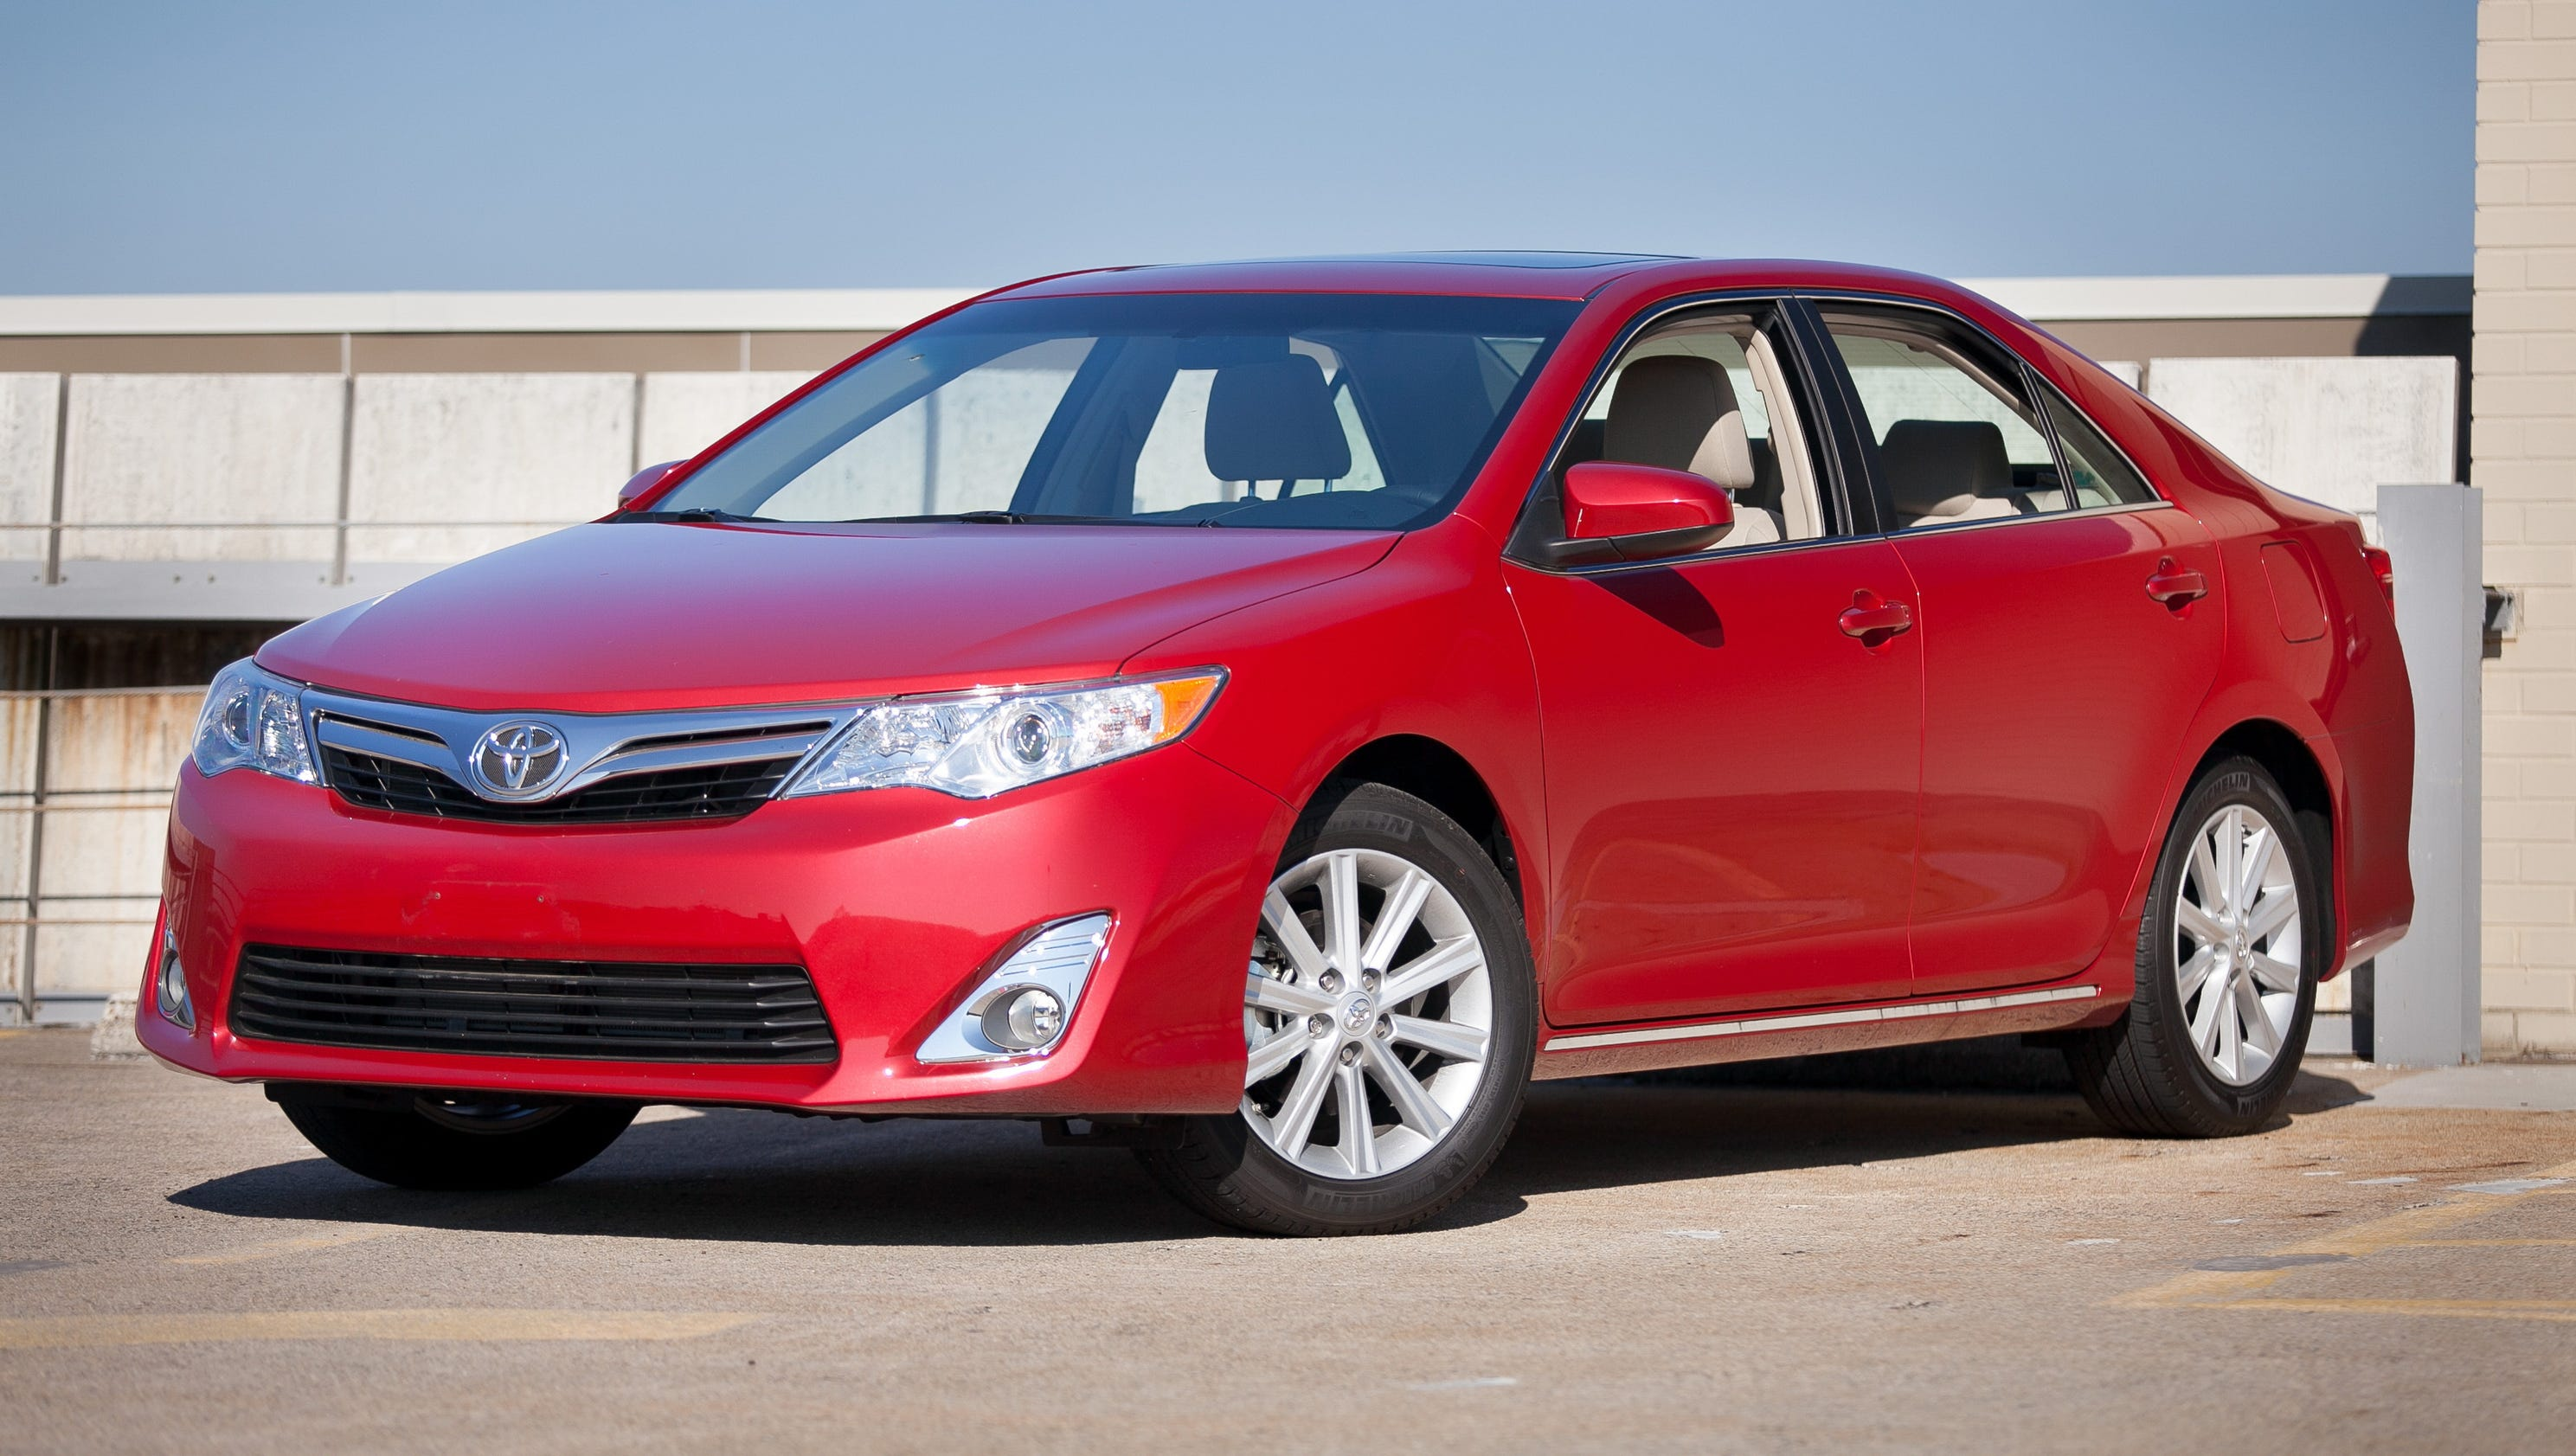 camry toyota questions here mounting does image vehicle of enter lights motor fog le description support